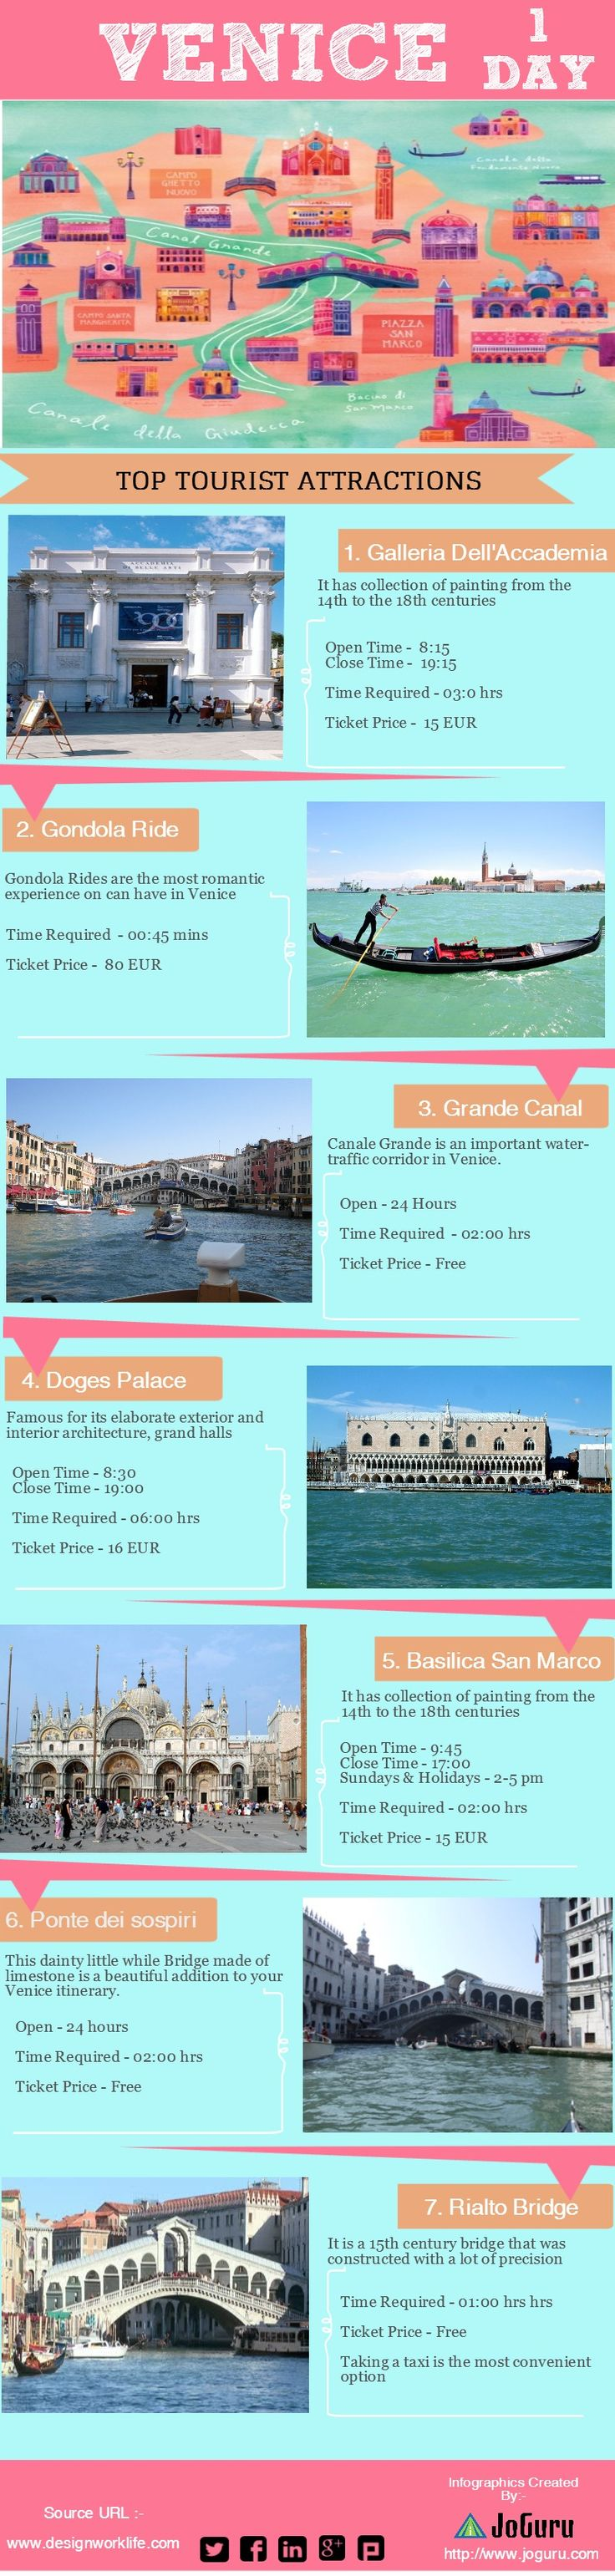 Venice Top Tourist Attractions | #travel #infographic made in @Piktochart